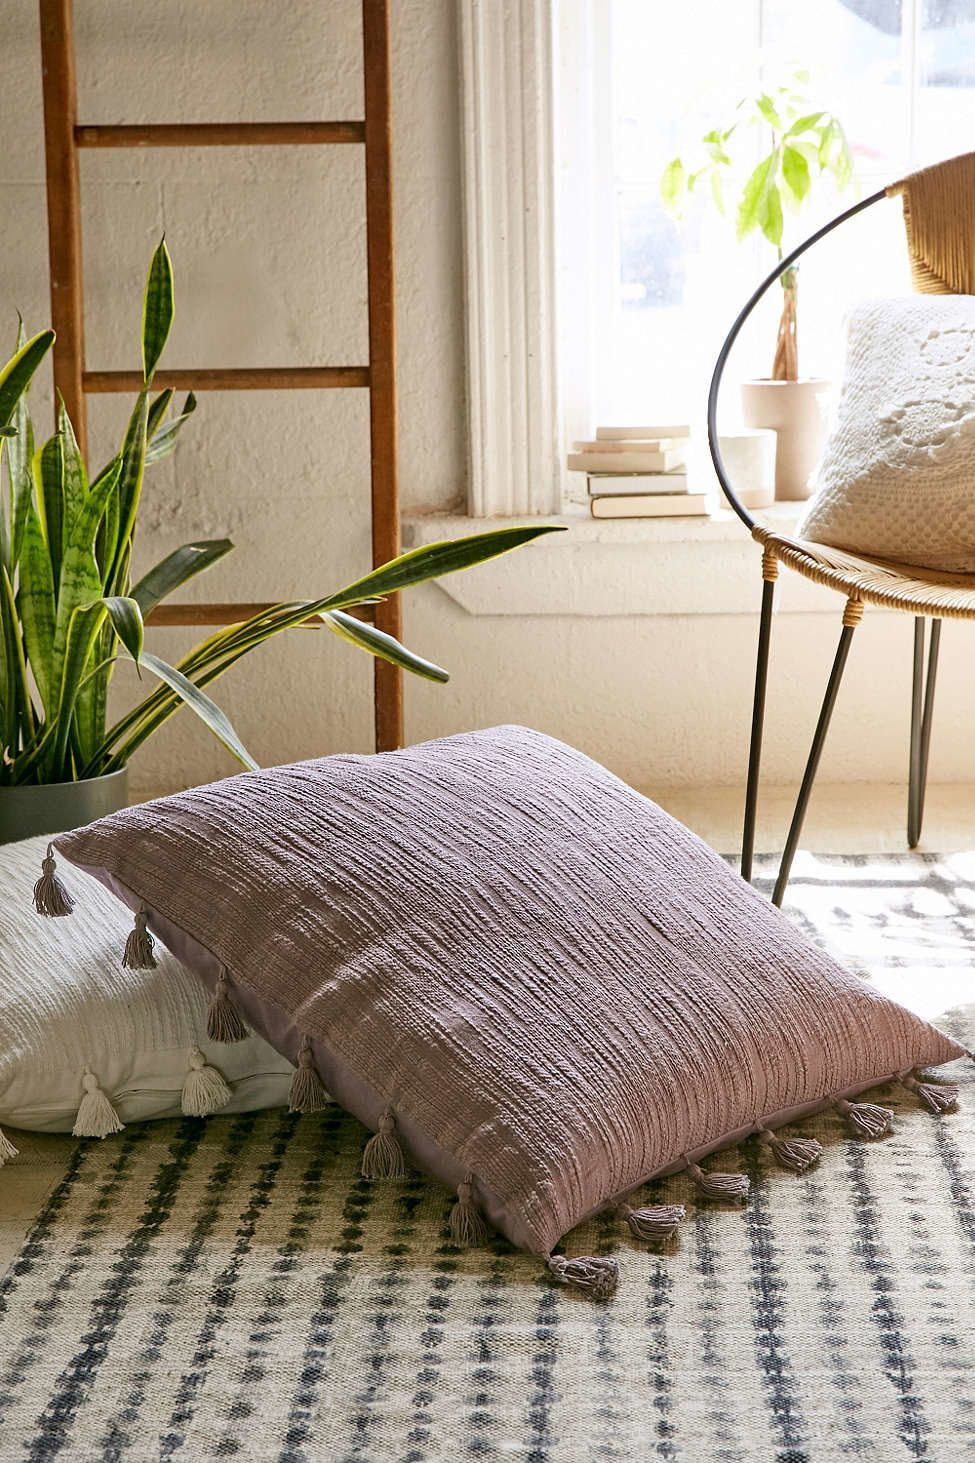 12 oversized throw pillows are great to nestle against during a netflix binge